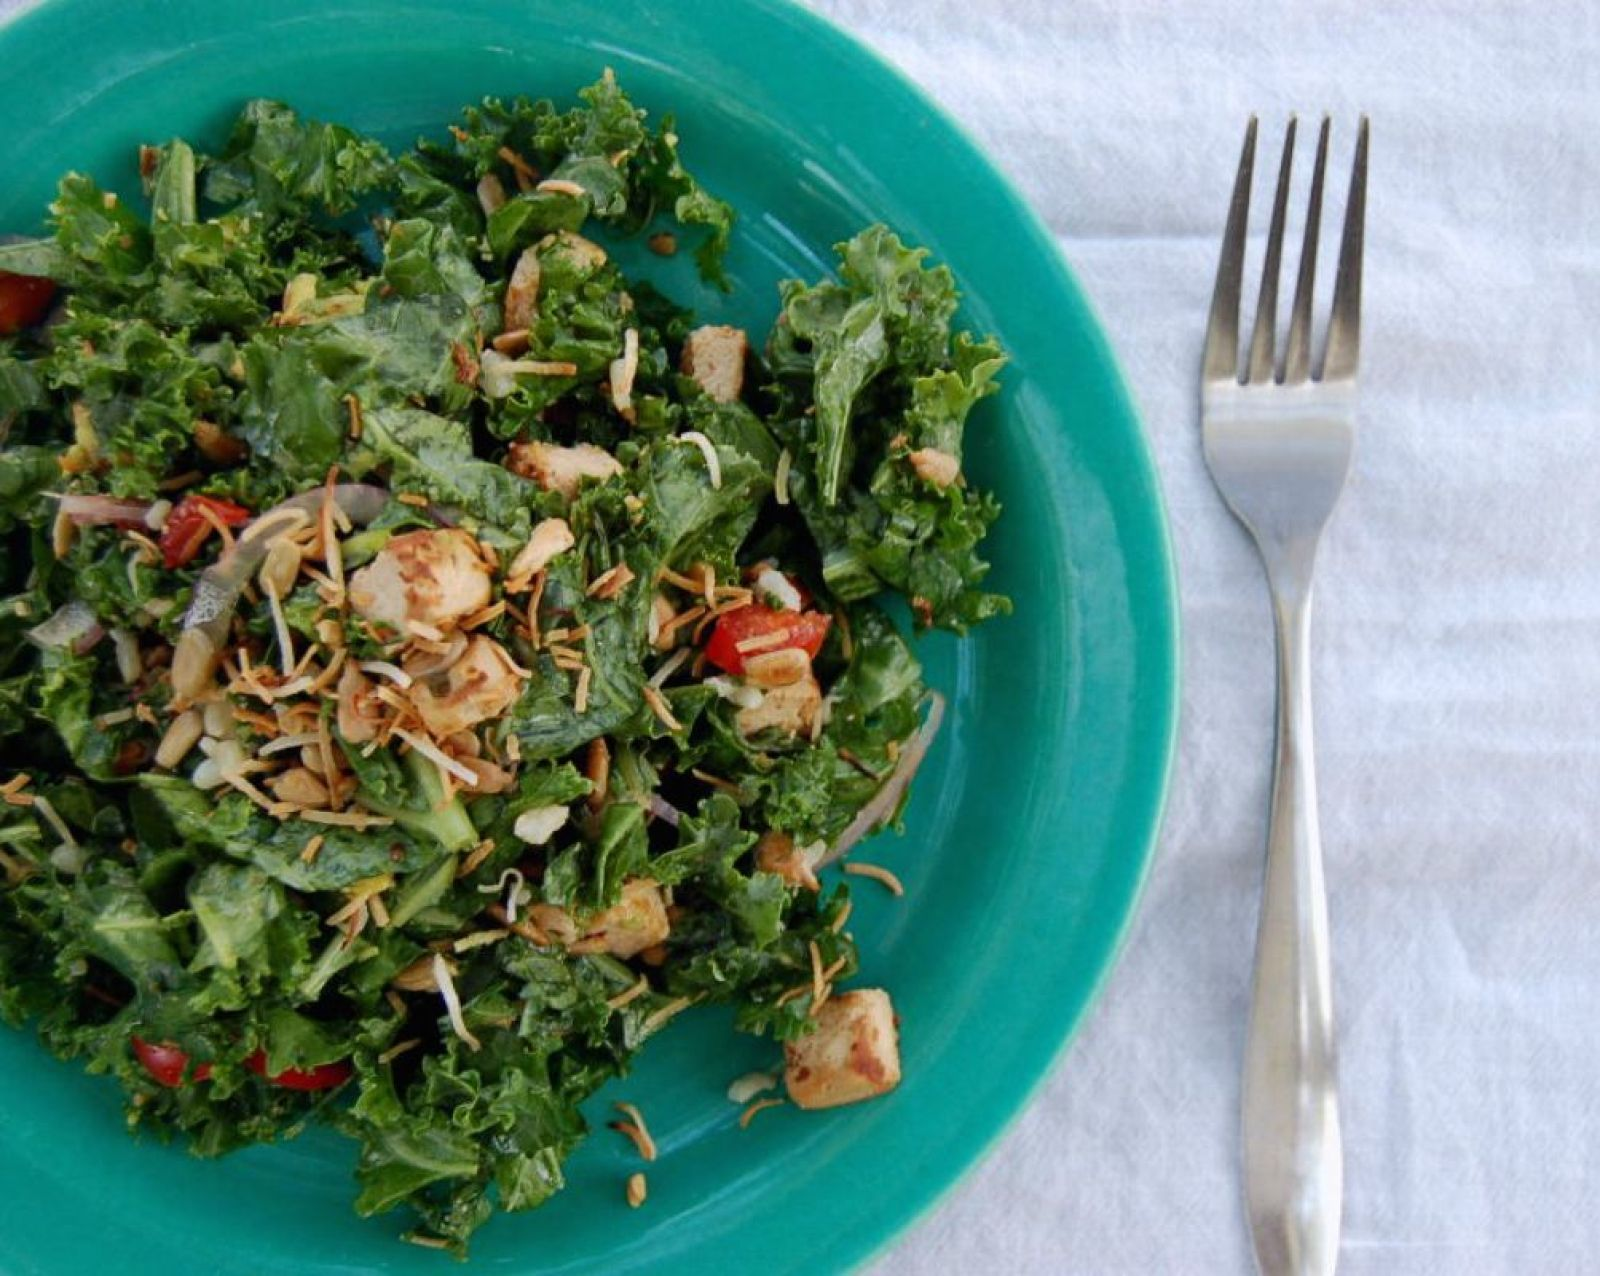 Toasted Coconut Kale Salad With Tofu, Brown Rice, and Lime [Vegan, Gluten-Free]